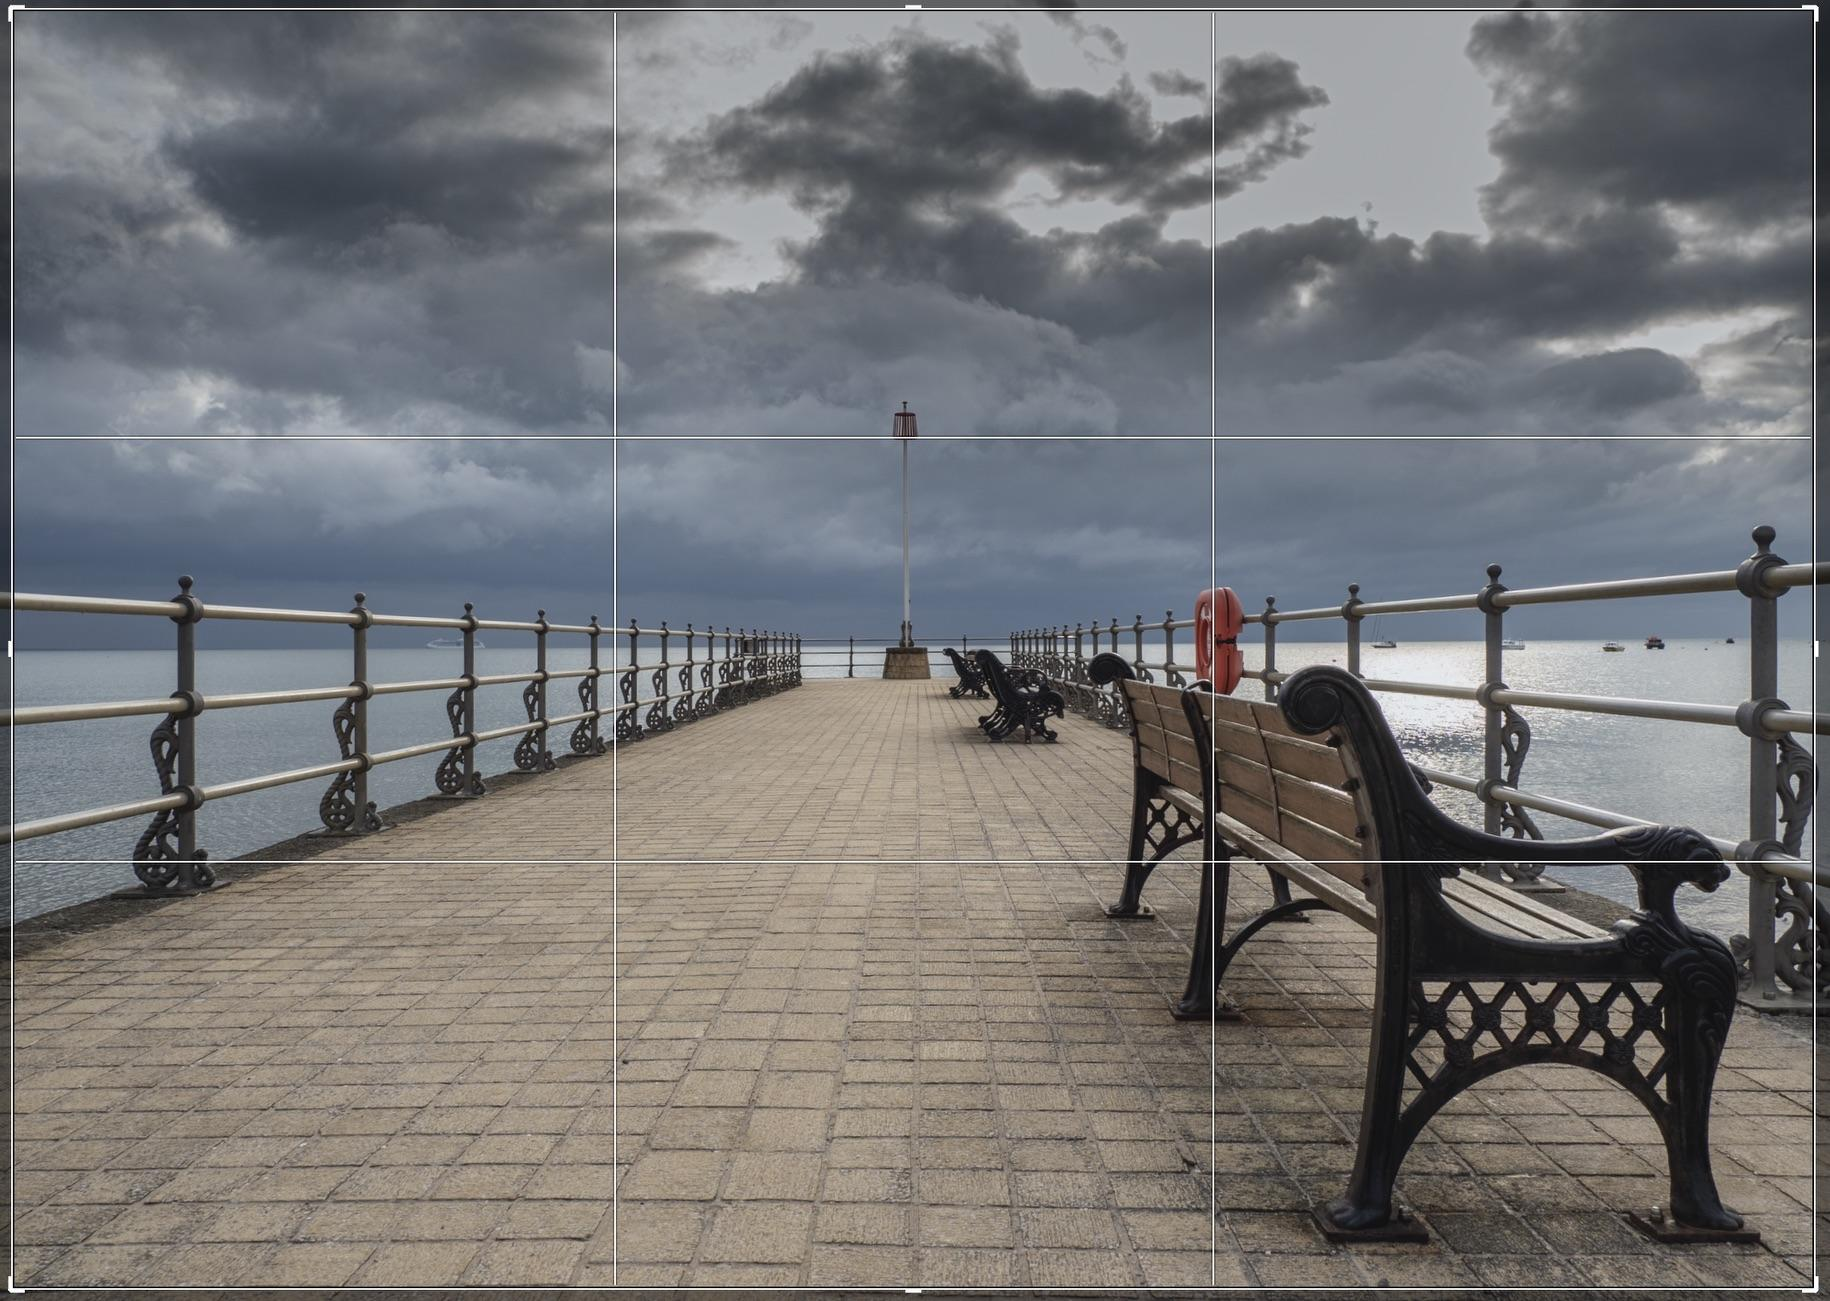 An alternative example of the Benches in Swanage that make up the image Benched. This one didn't make the cut.